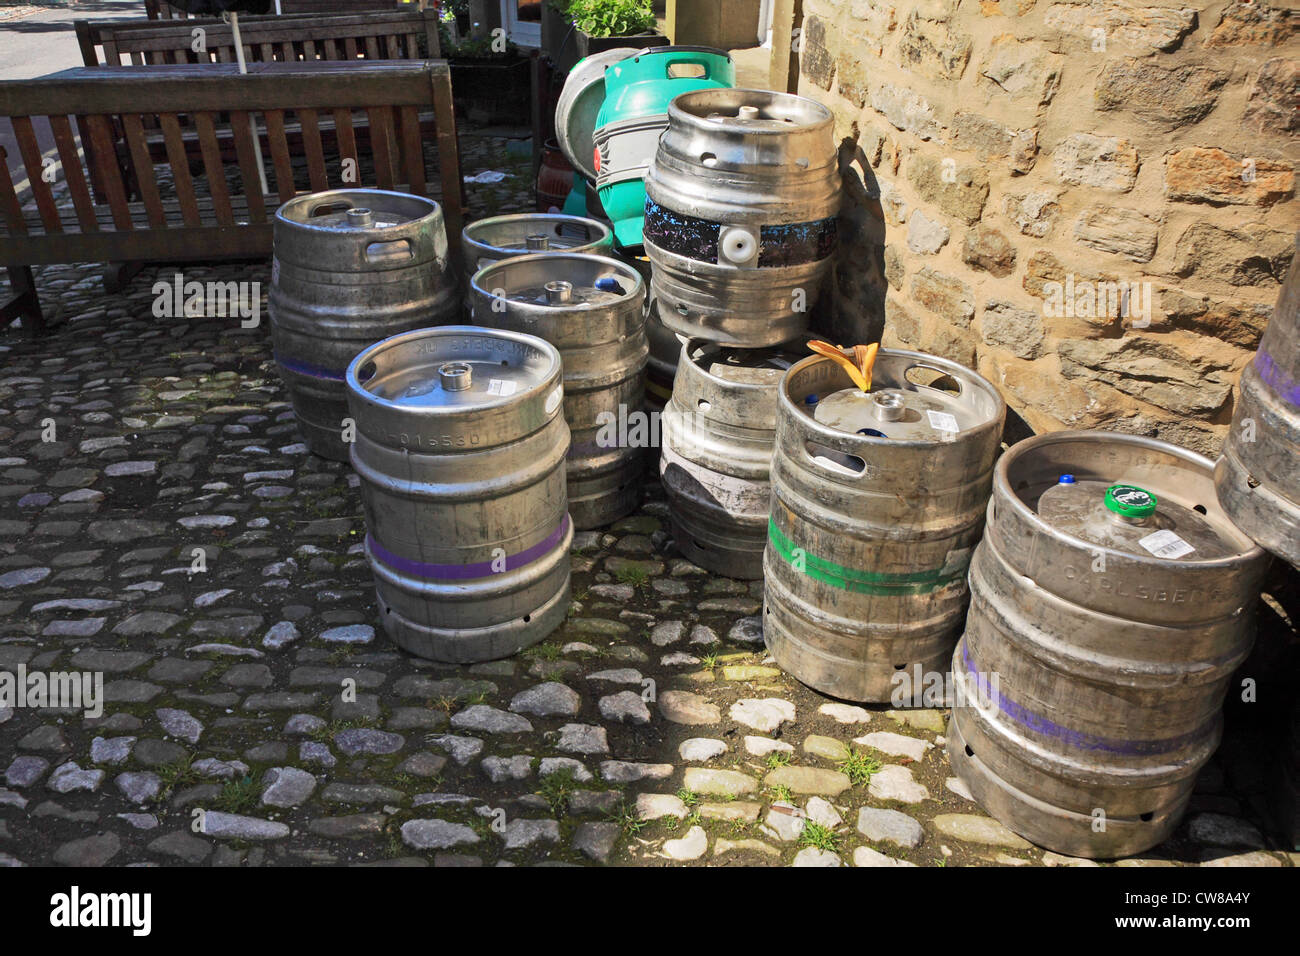 Beer containers outside a pub, England, UK - Stock Image